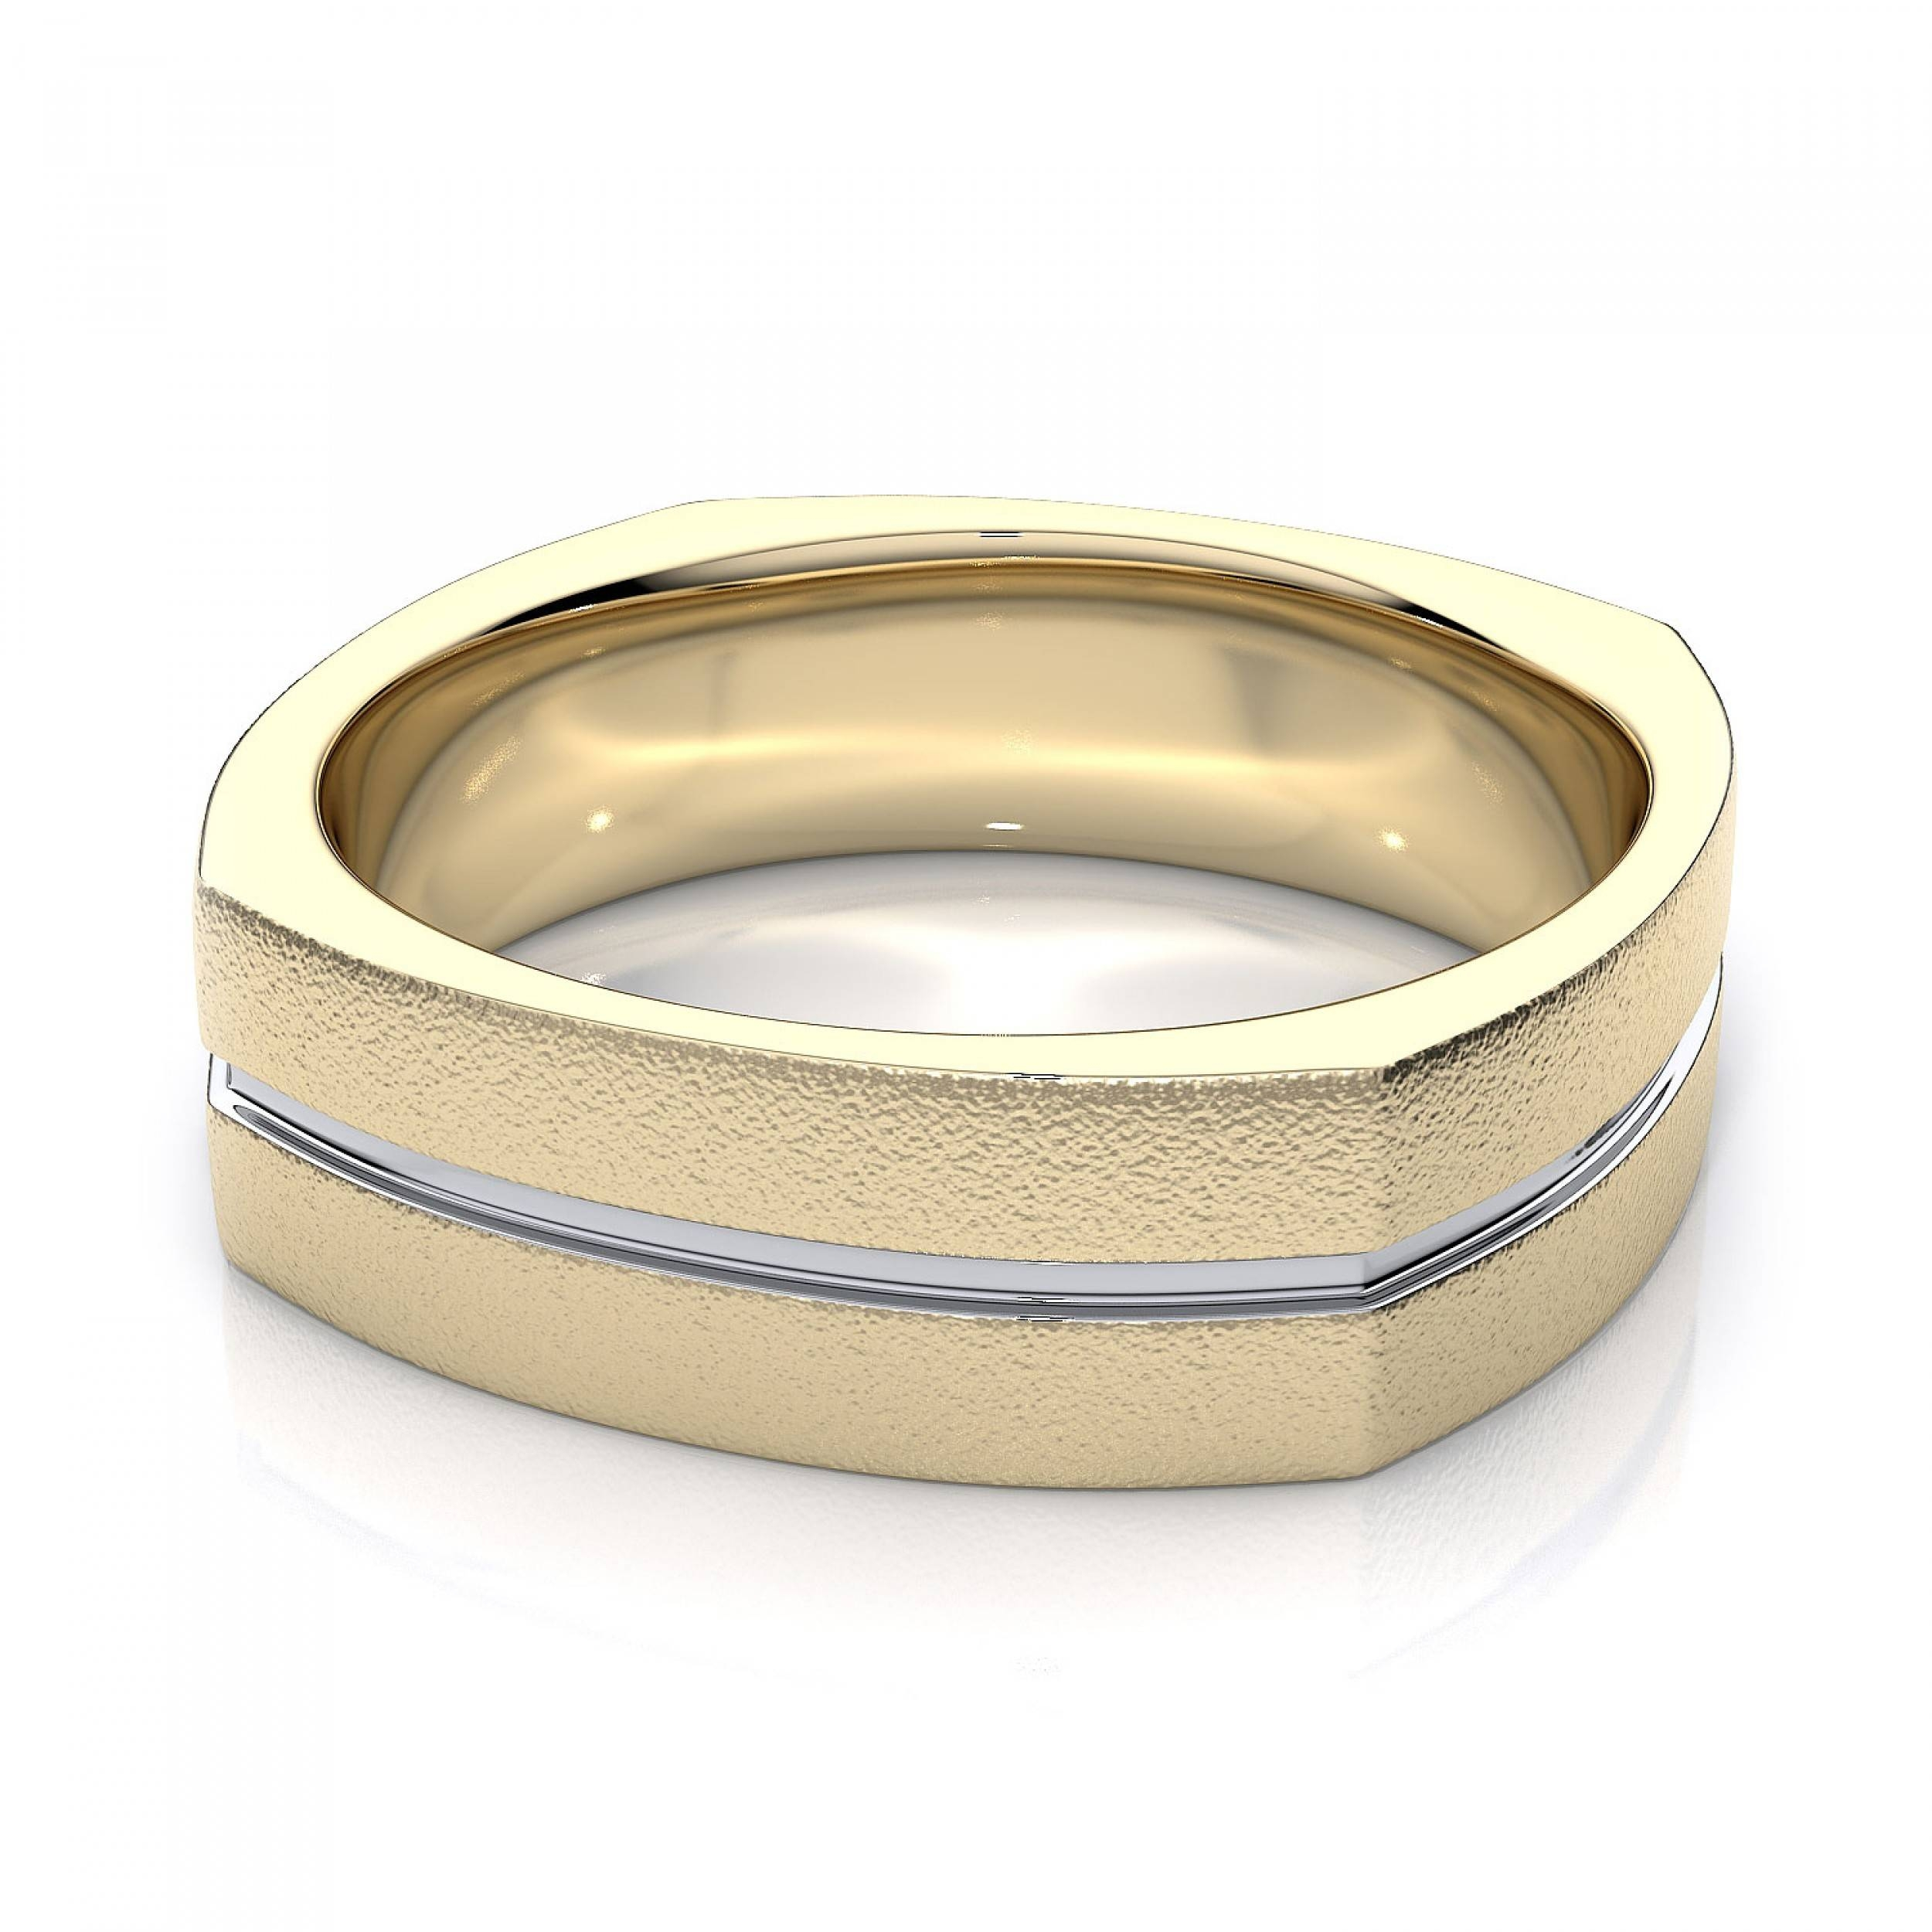 European Shank Two Tone Mens Plain Wedding Band In 14K Yellow Gold Regarding Men's Two Tone Diamond Wedding Bands (View 6 of 15)